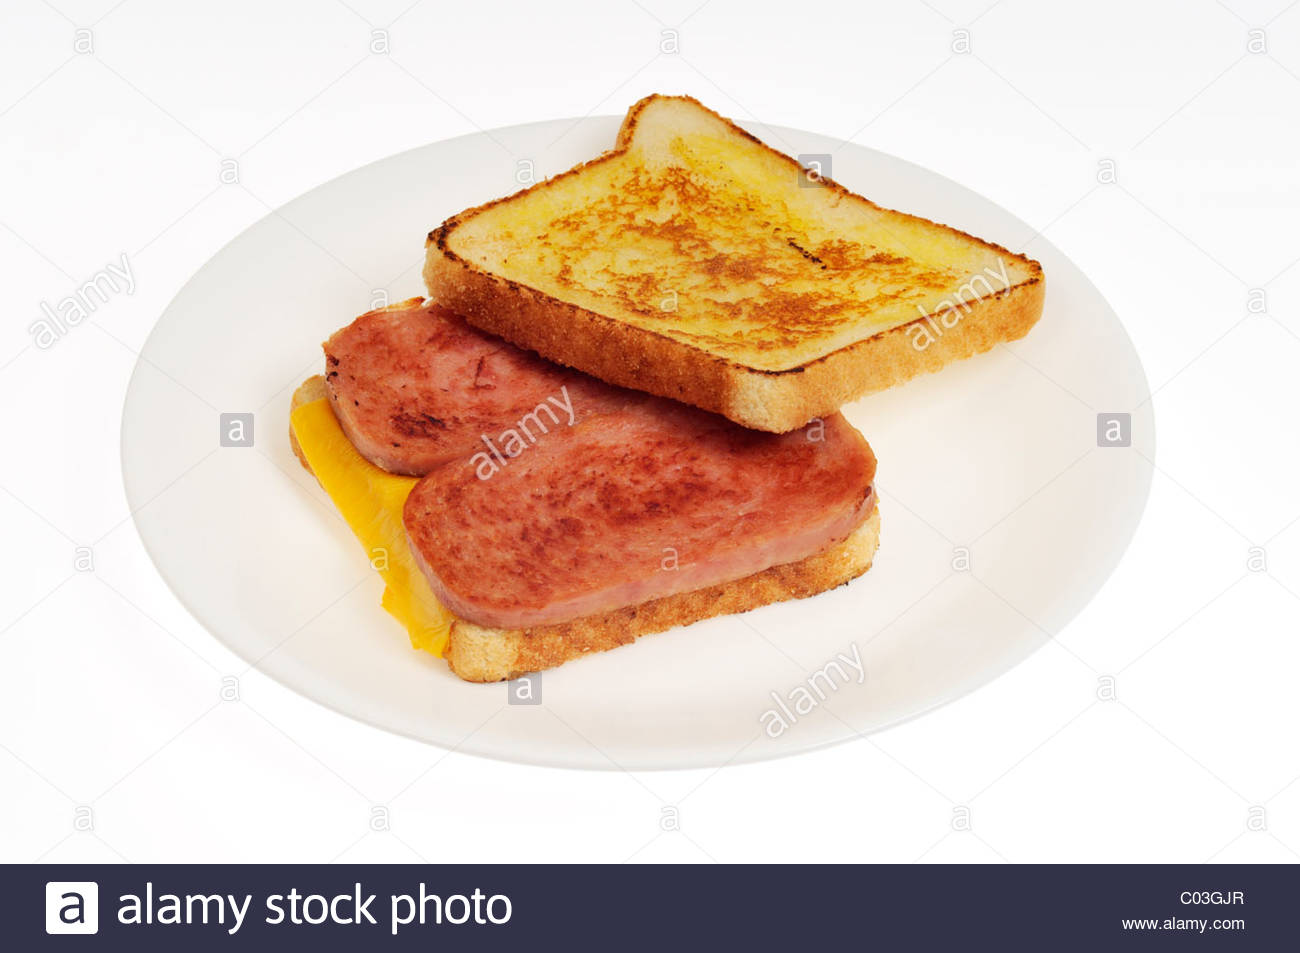 Toasted Hormel Spam sandwich with cheese on white plate on white 1300x953